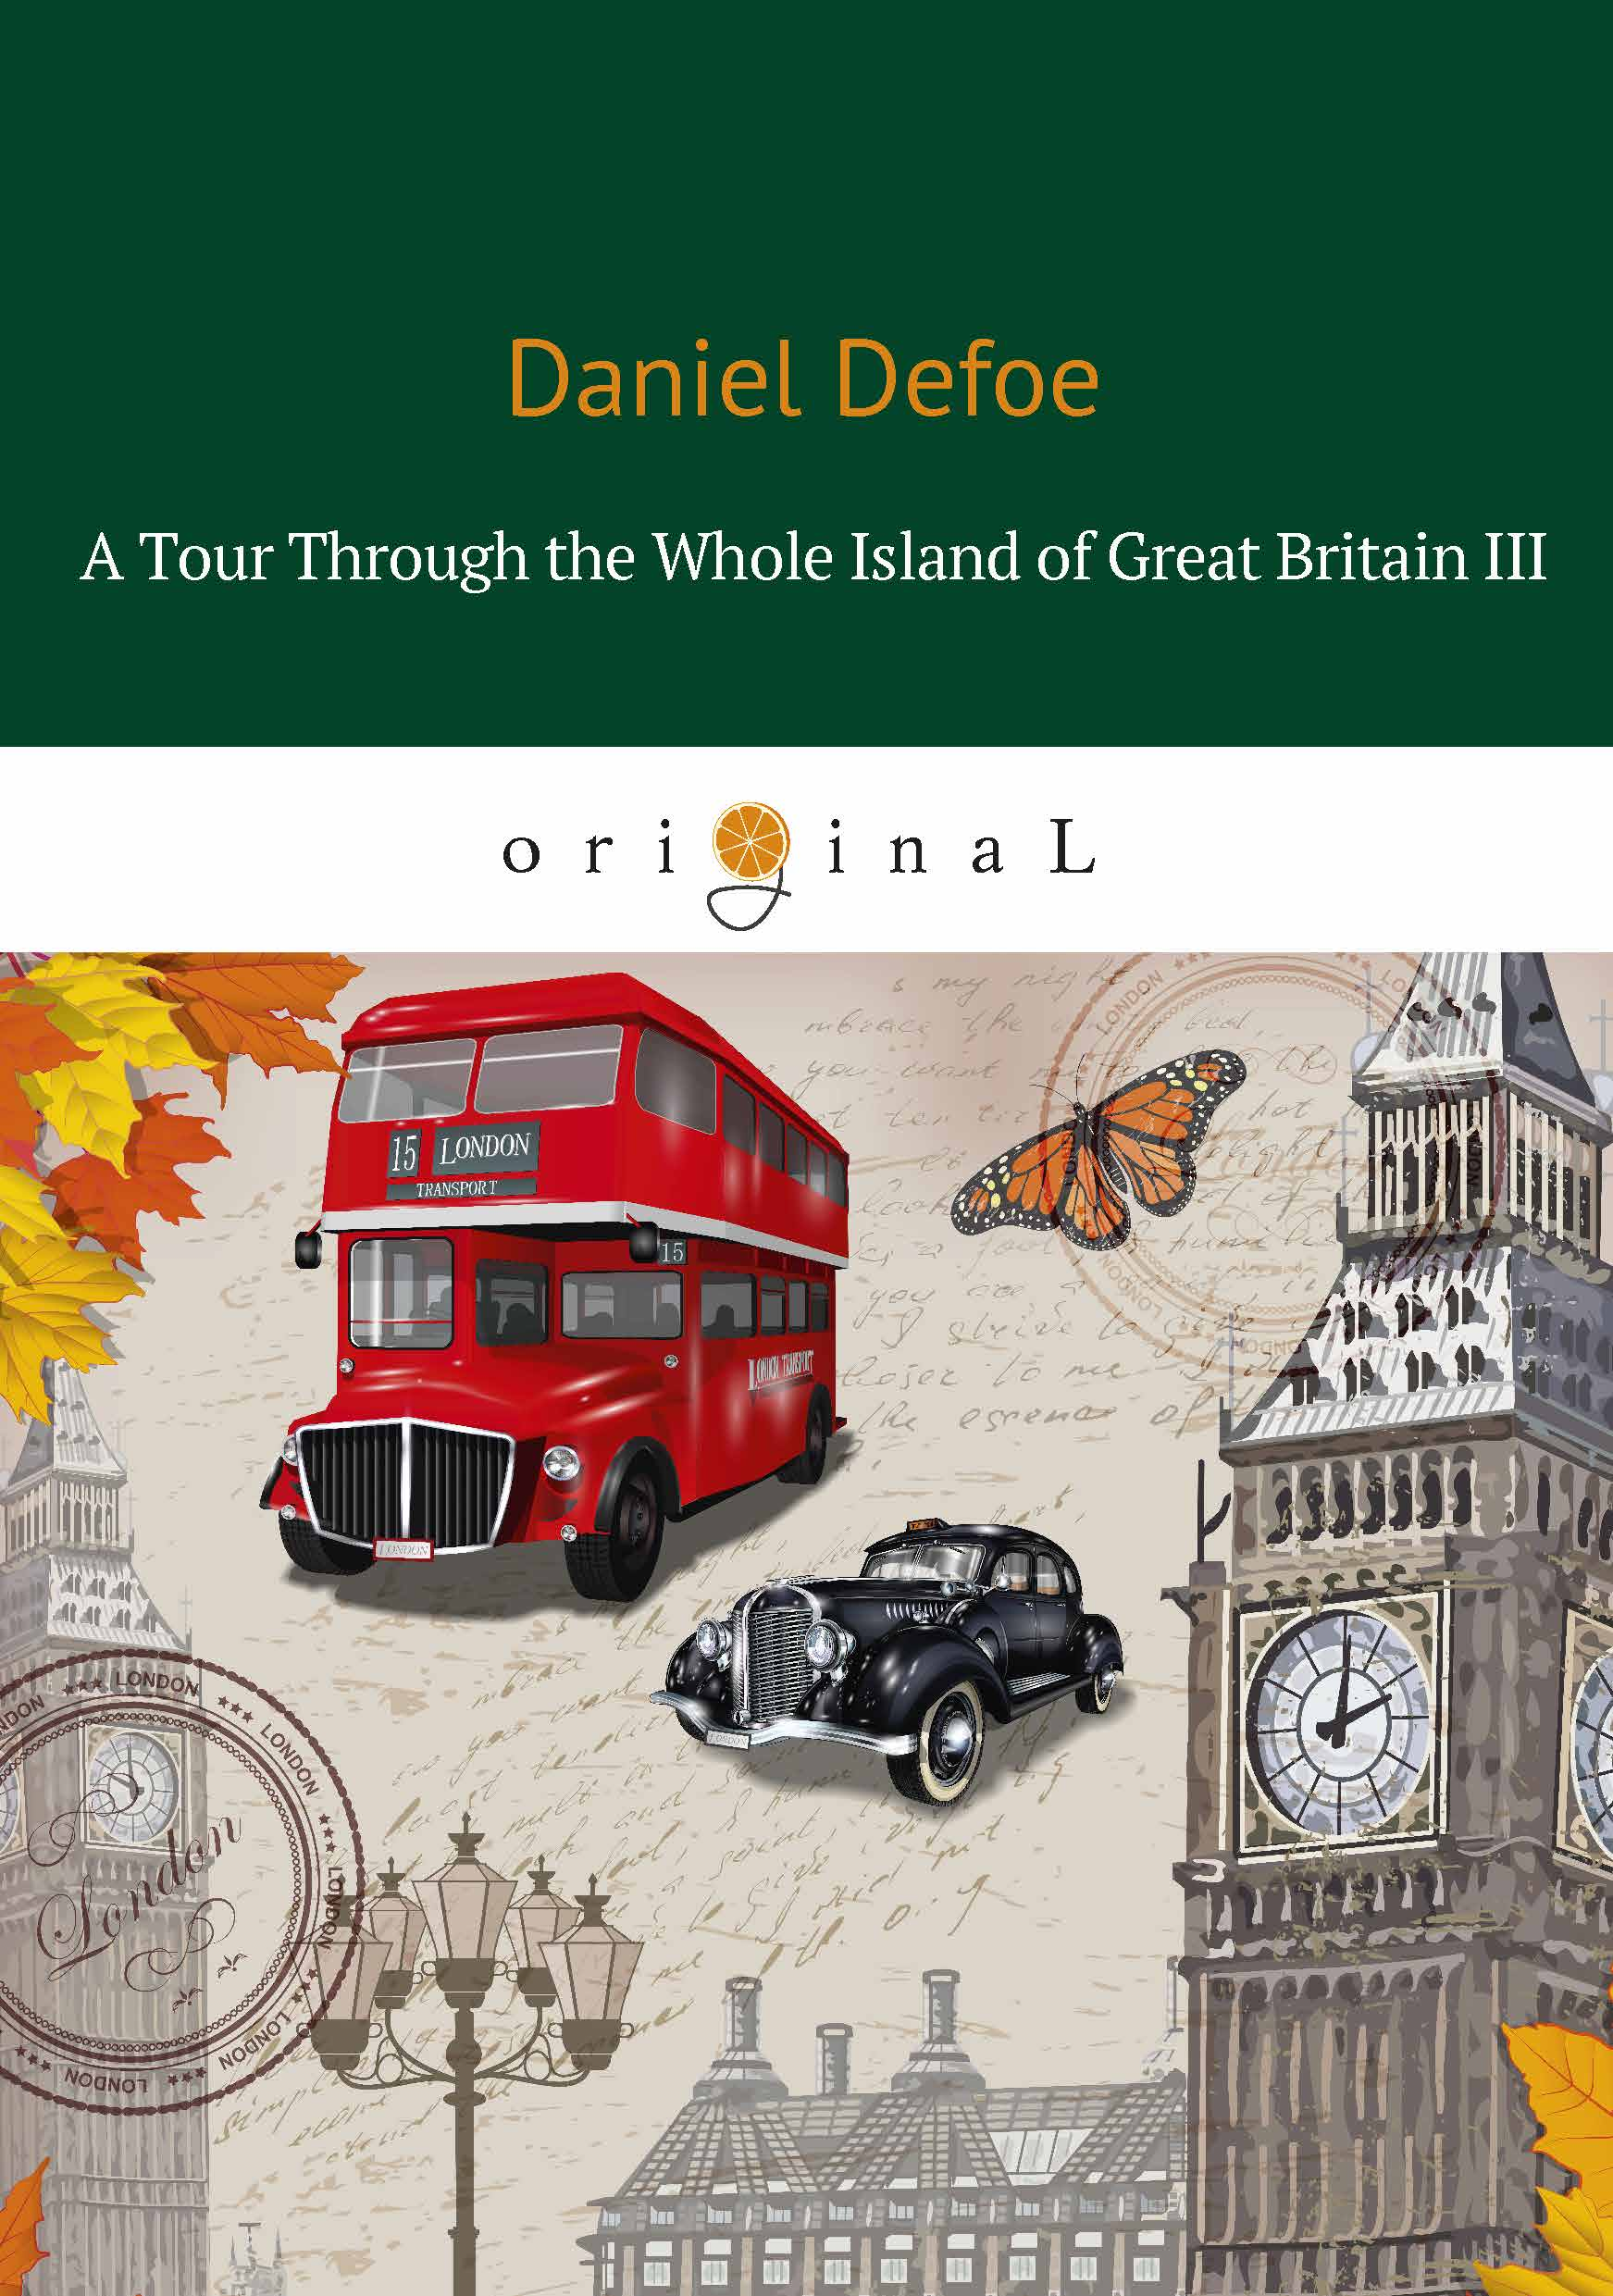 Daniel Defoe A Tour Through the Whole Island of Great Britain III даниэль дефо a tour through the whole island of great britain iii